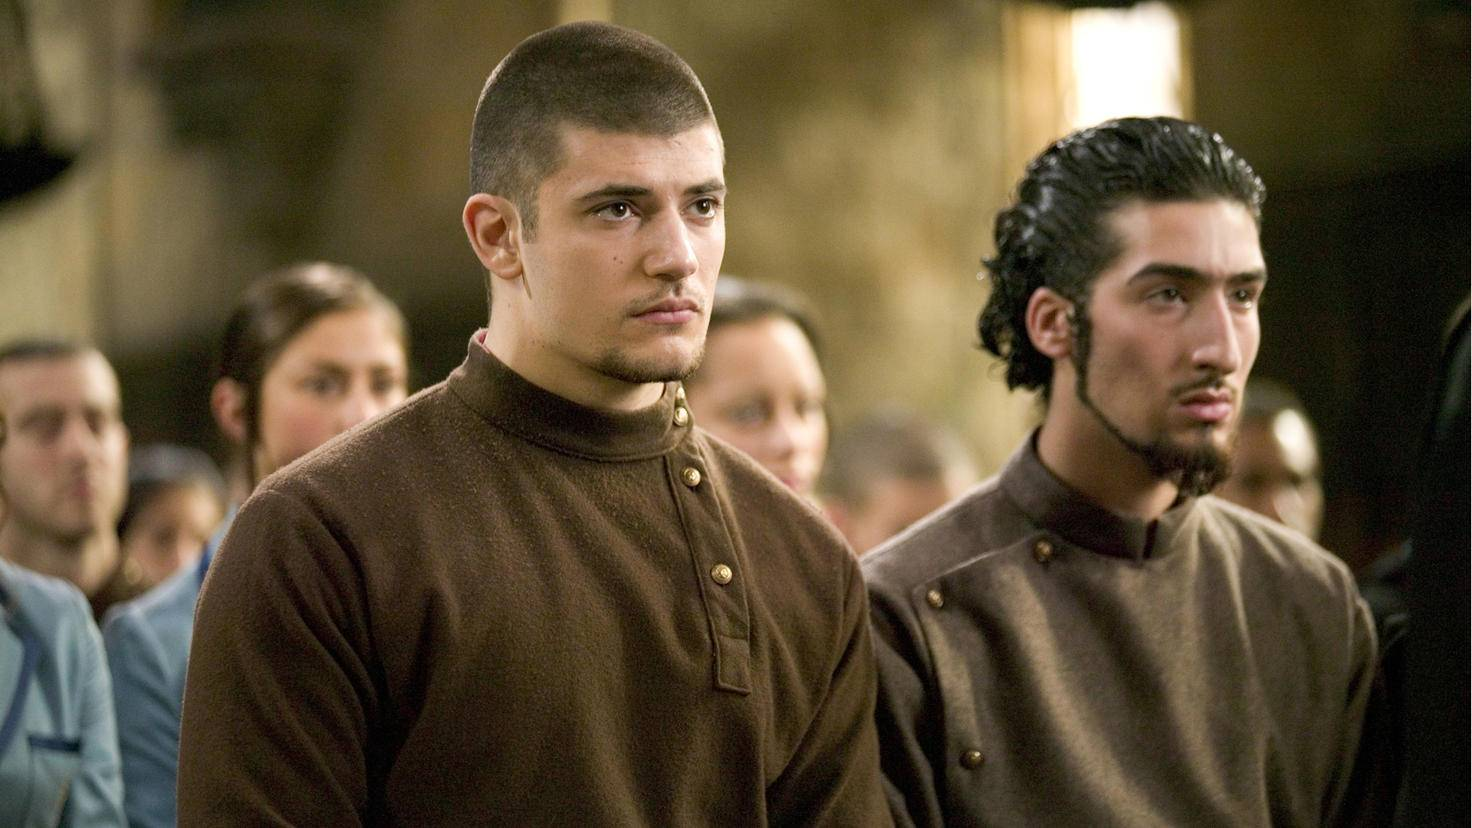 Harry Potter Feuerkelch Viktor Krum